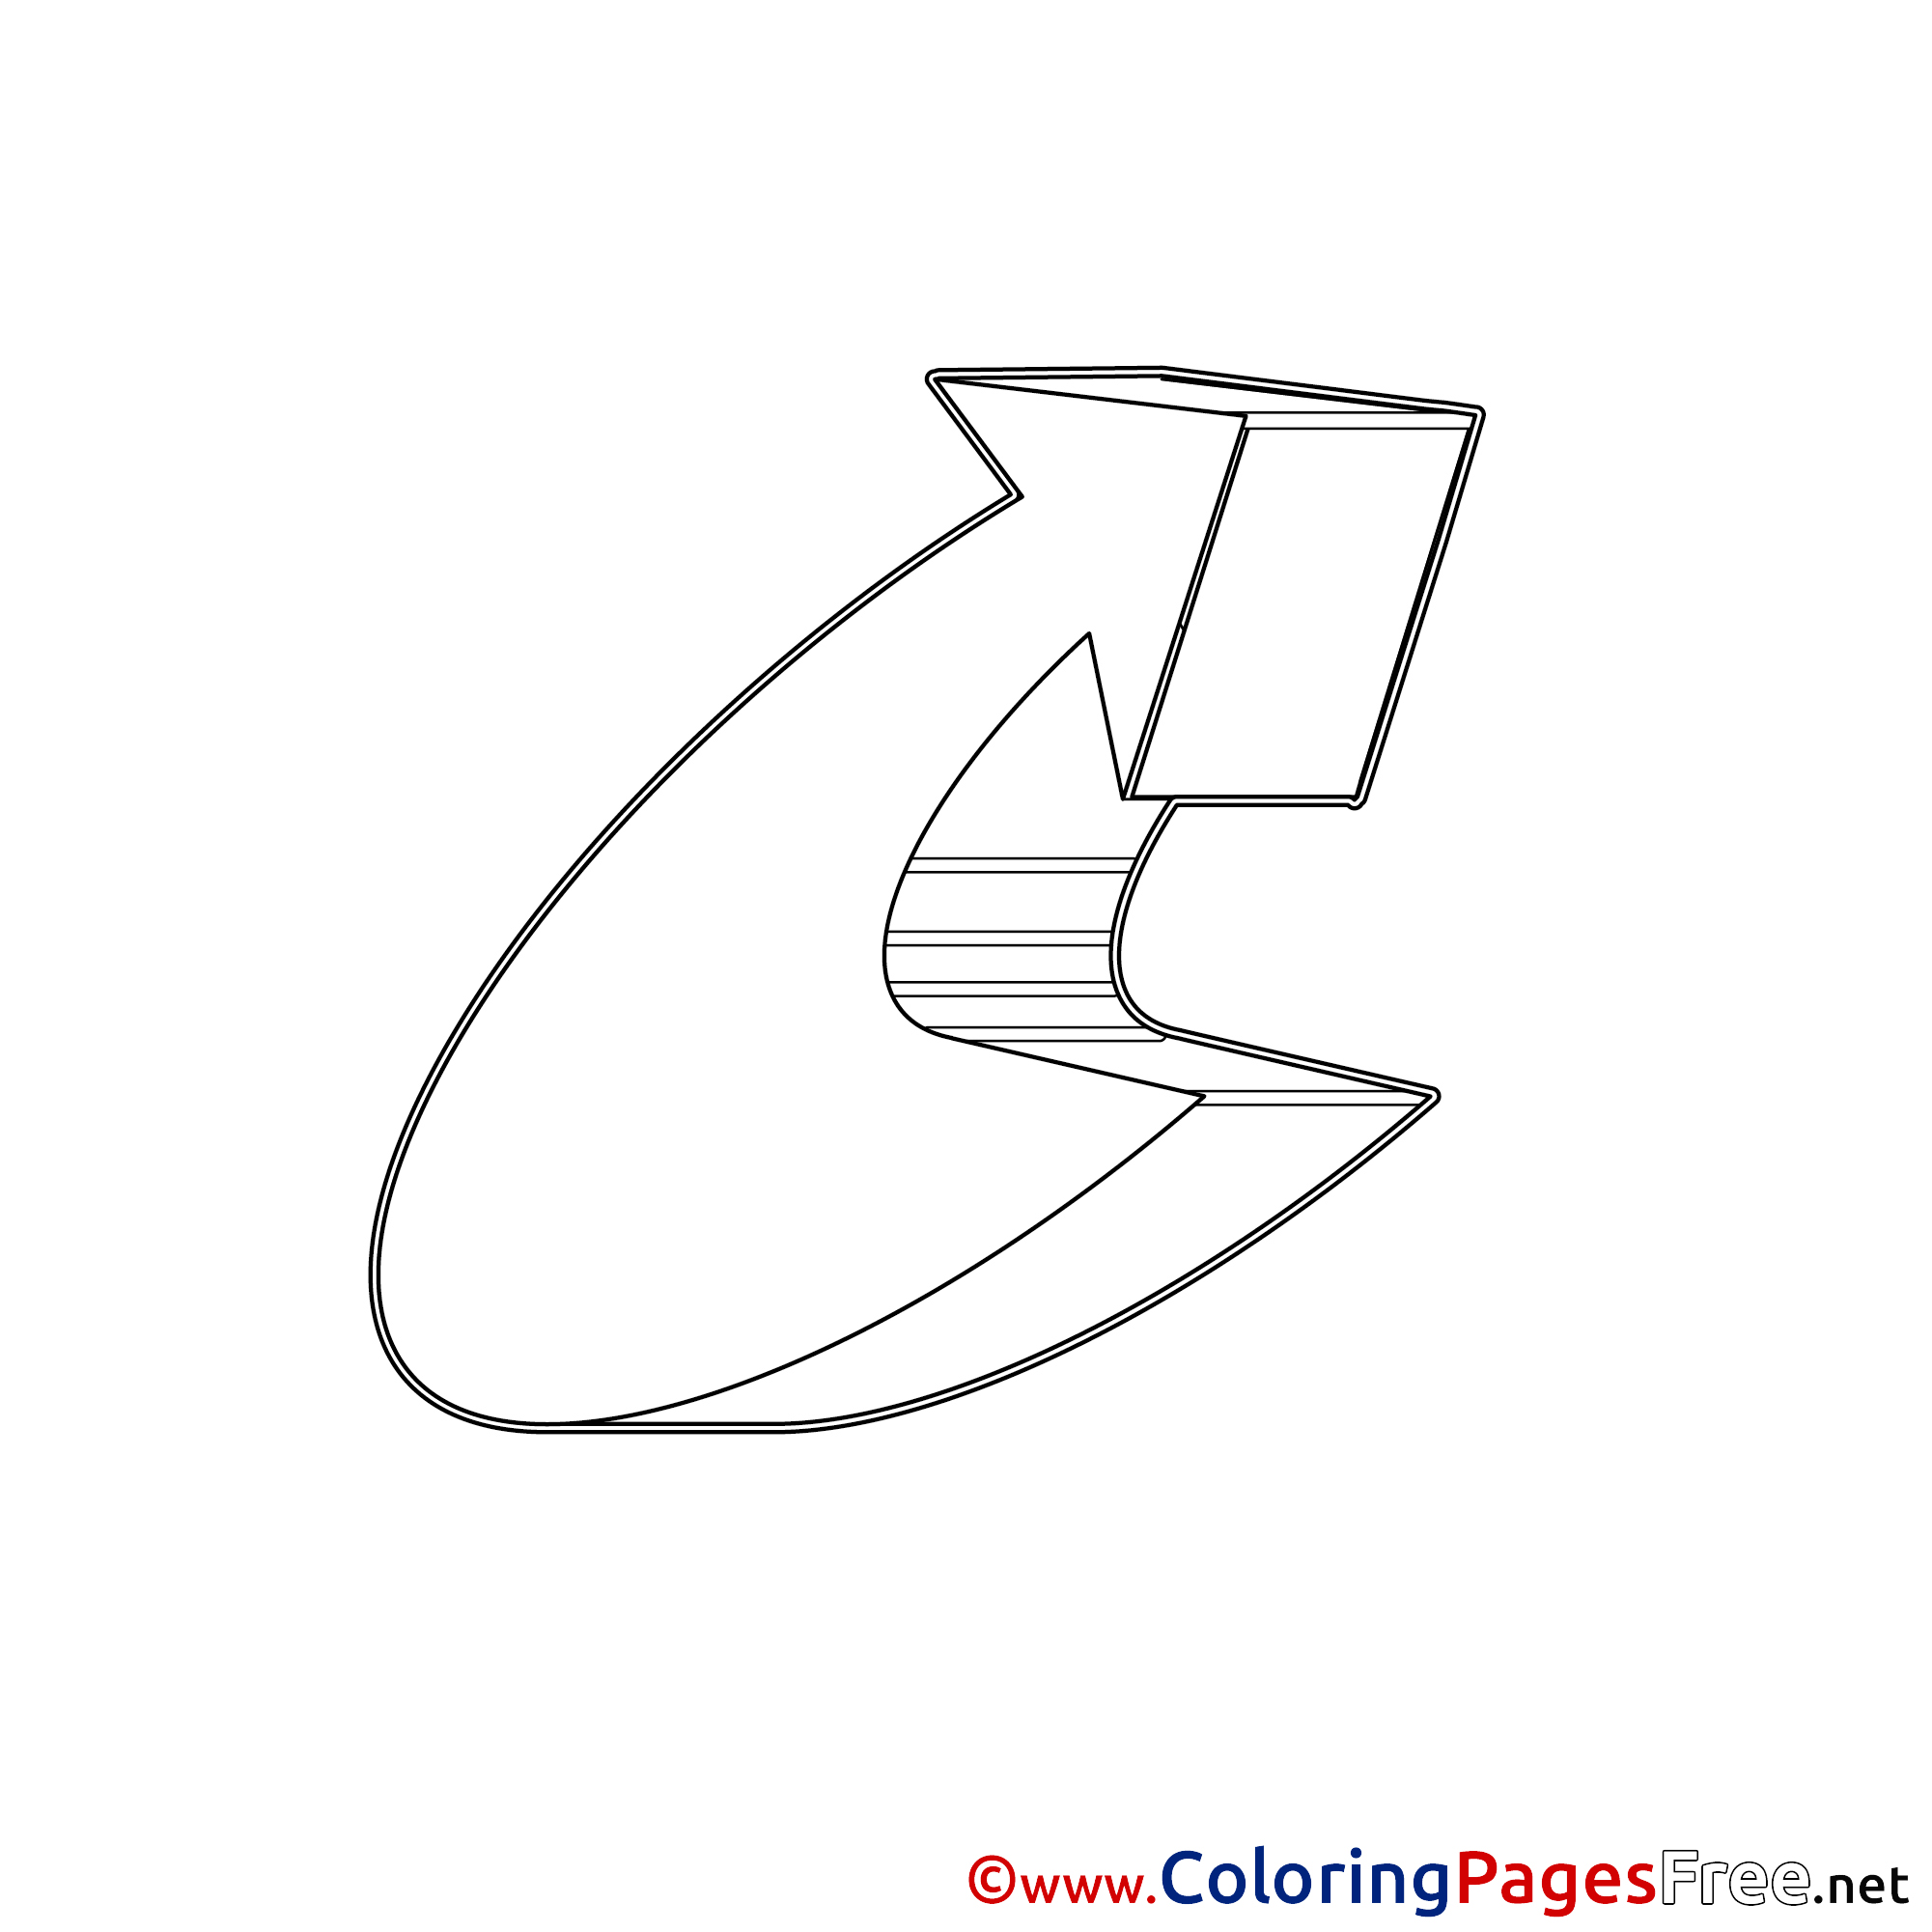 image regarding Arrow Printable known as Totally free Arrow printable Coloring Sheets